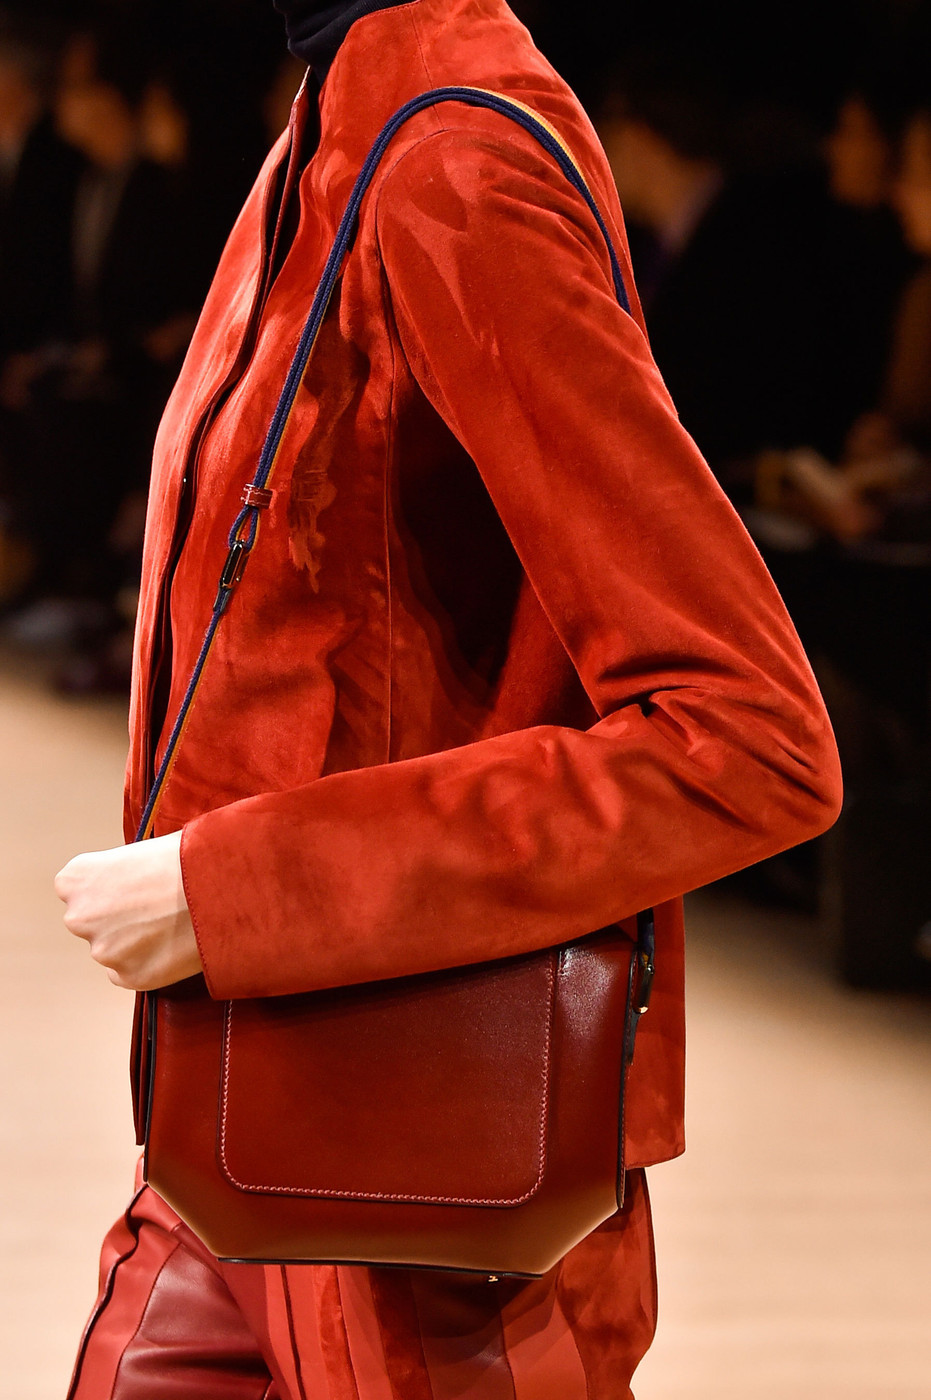 Hermes Fall/Winter 2015 / fashioned by love